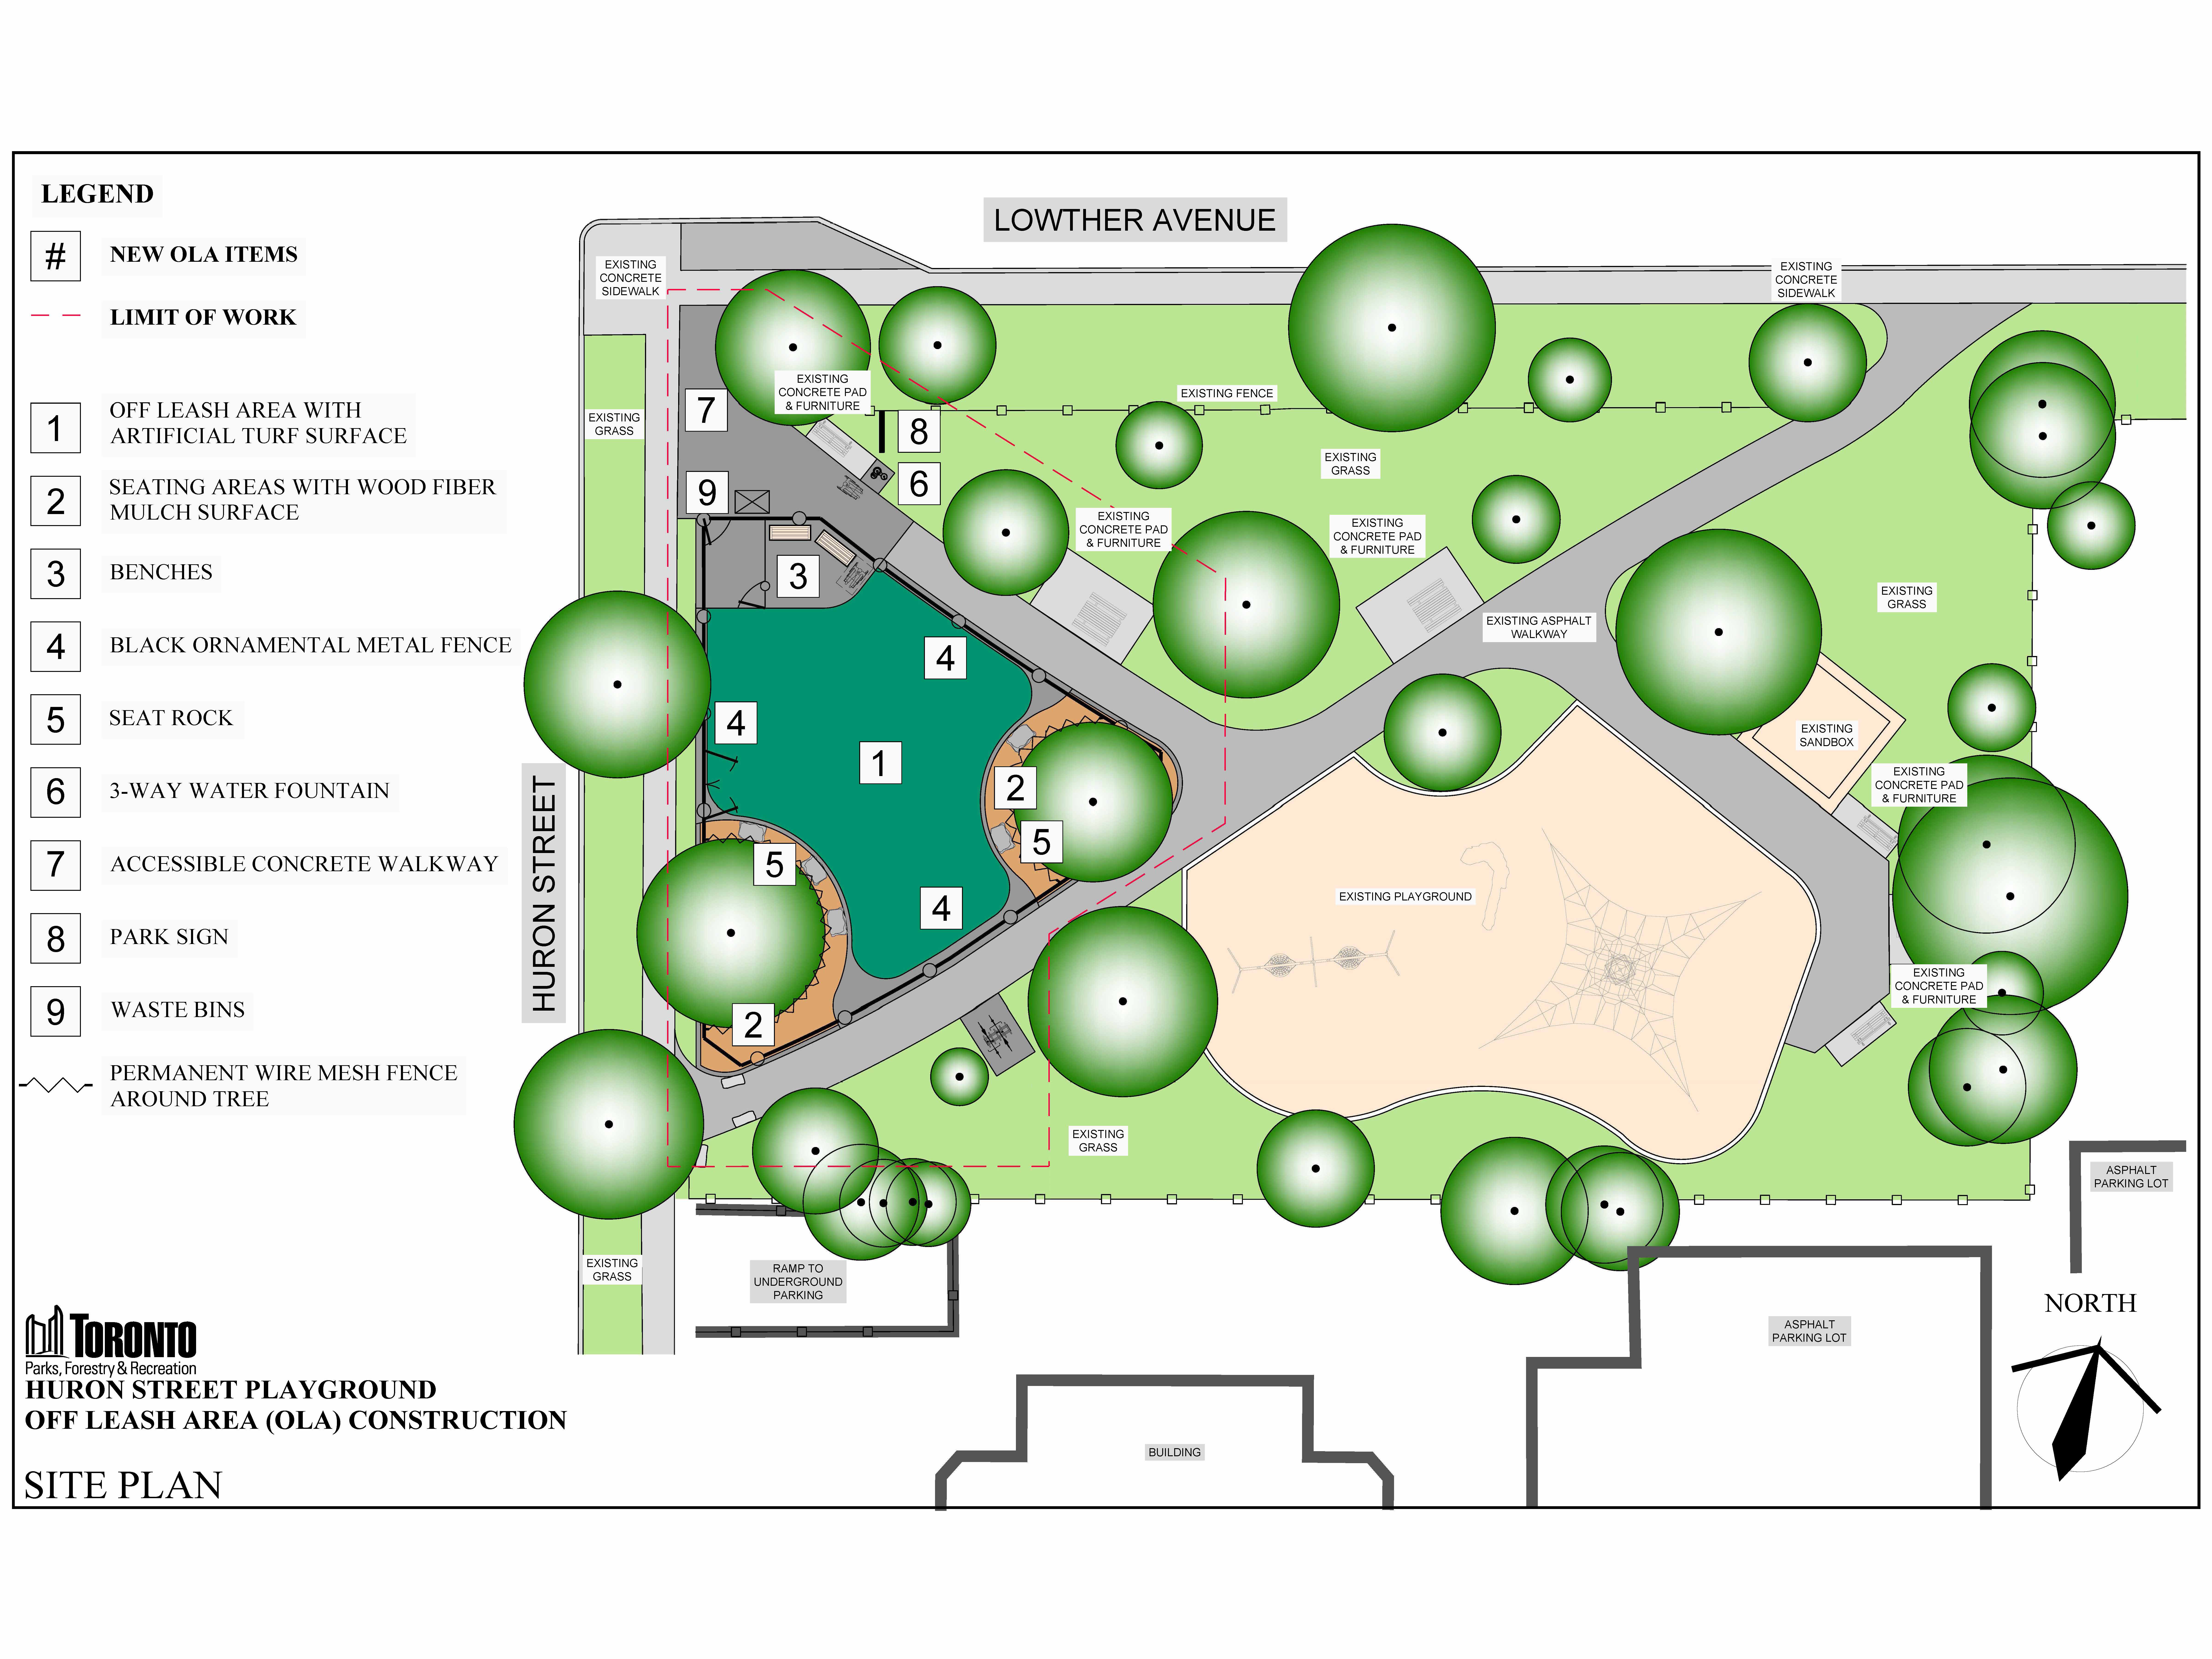 An aerial view of the proposed Huron Street Playground, with surrounding existing information such as fences, grass, site furniture, sidewalks, residences, and streets. 1.1.2 The Site Plan is situated at Huron Street Playground, at the corner of Huron street and Lowther Avenue. Square-boxed letters describing the new conditions that corresponds to numeric labelling on the Site Plan. Text describes proposed conditions such as a new off-leash area with artificial turf surface, seating areas with wood fiber mulch surface, benches, black ornamental metal fencing, seat rocks, three-way water fountain, accessible concrete walkway, park sign, waste bins, and permanent wire mesh fence.